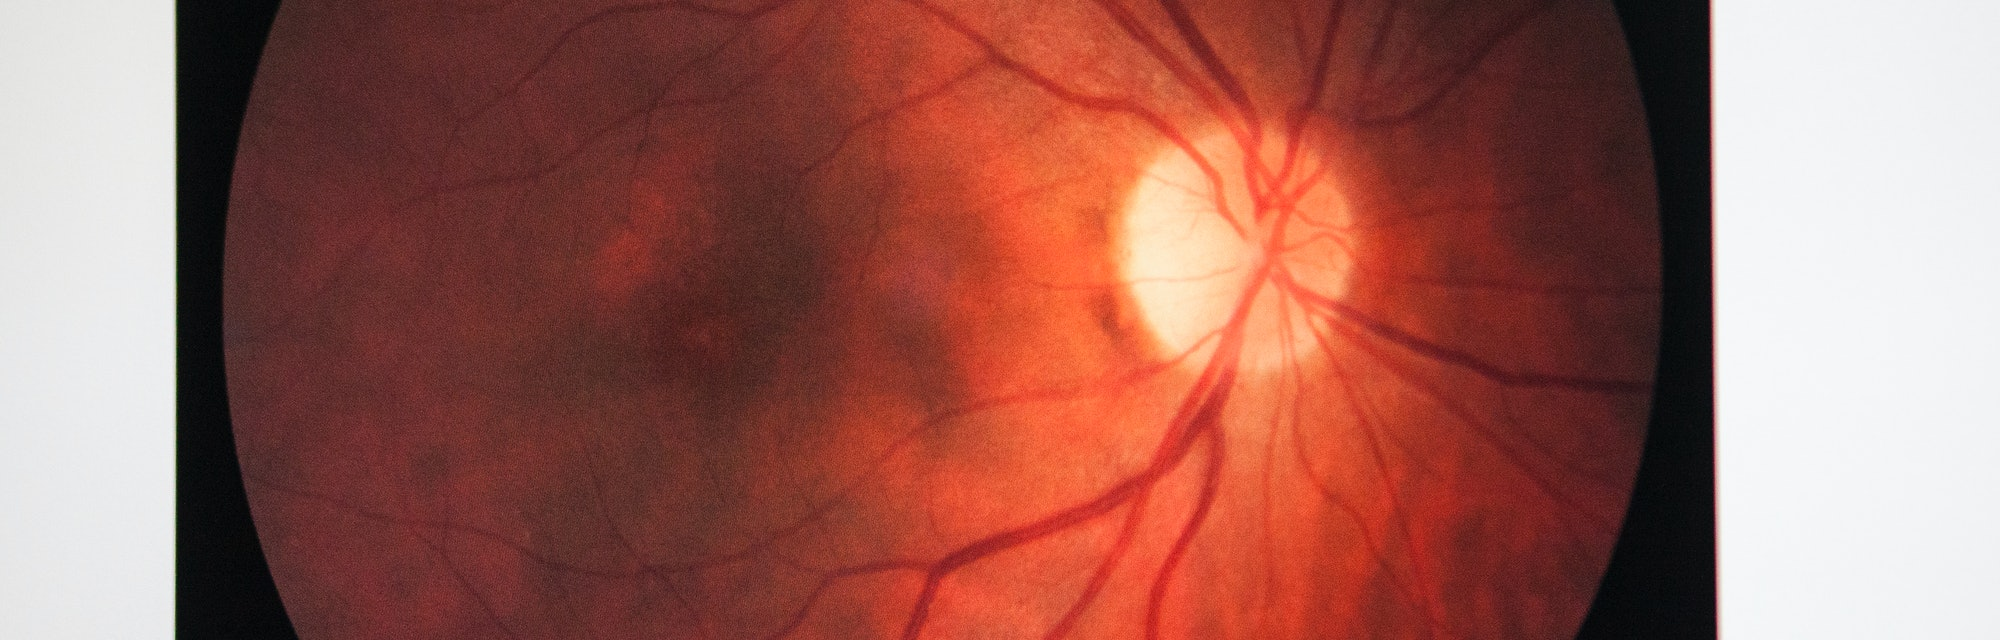 Fundus oculi of a patient suffering from retinal edema. (Photo by: BSIP/Universal Images Group via G...